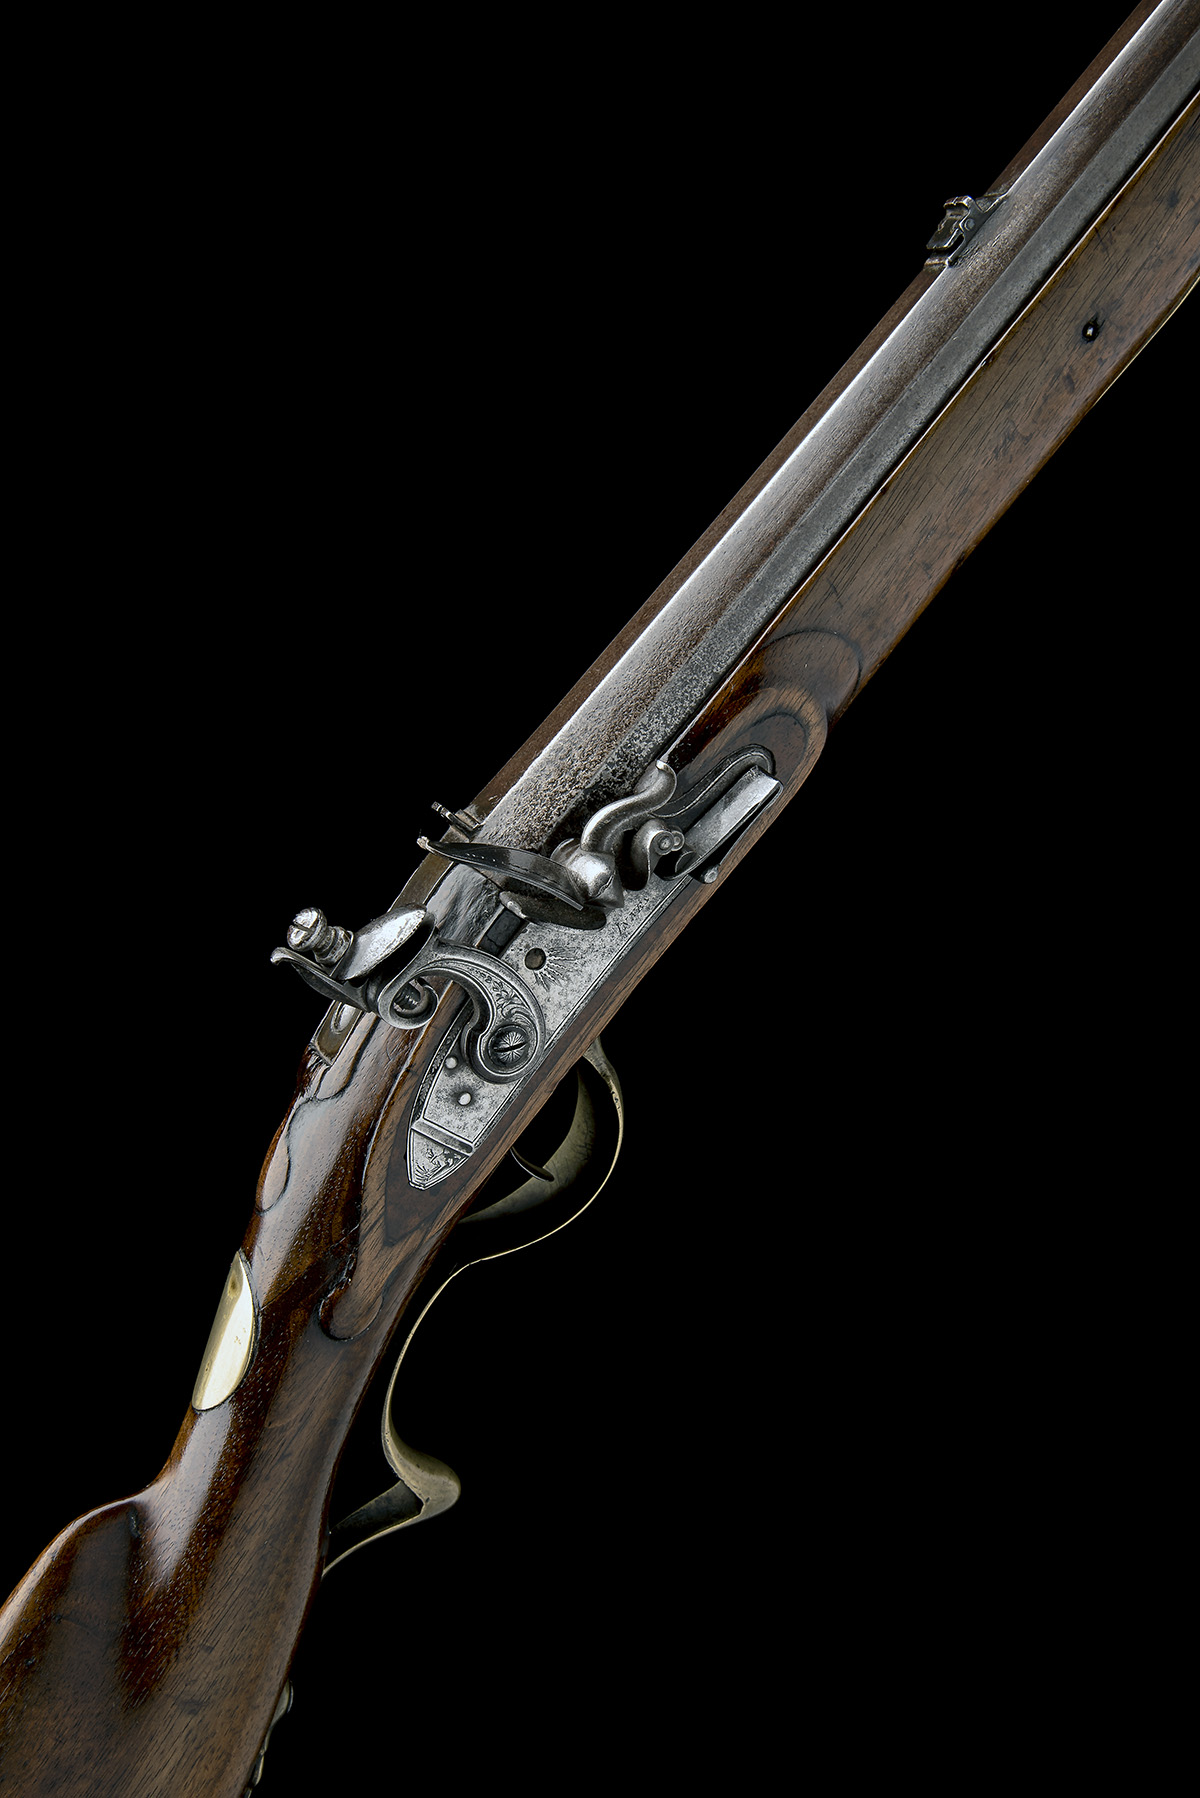 A .650 FLINTLOCK SPORTING-RIFLE SIGNED INNES, no visible serial number, circa 1780 and of jager